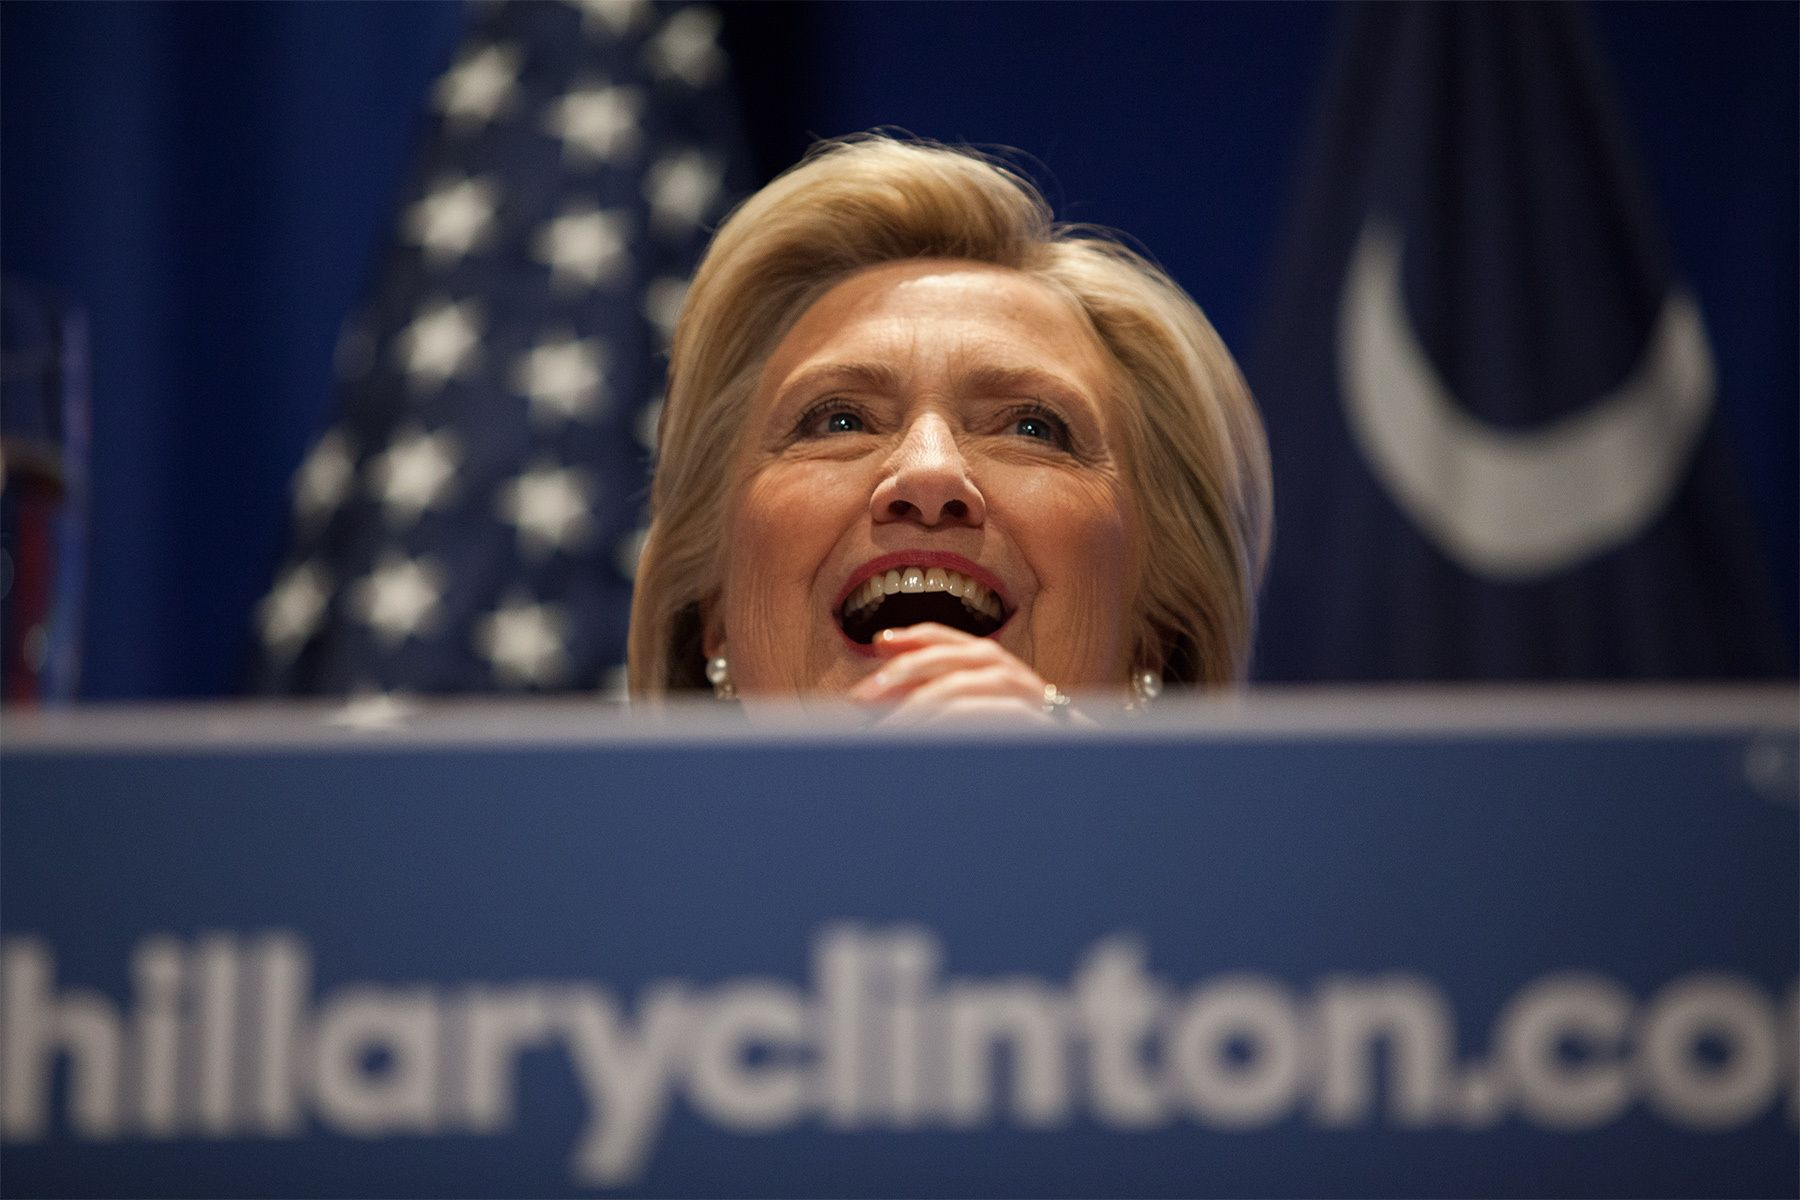 U.S. Democratic presidential candidate and former Secretary of State Hillary Clinton speaks at a rally at Trident Technical College Conference Center in North Charleston, South Carolina June 17, 2015.   REUTERS/Randall Hill